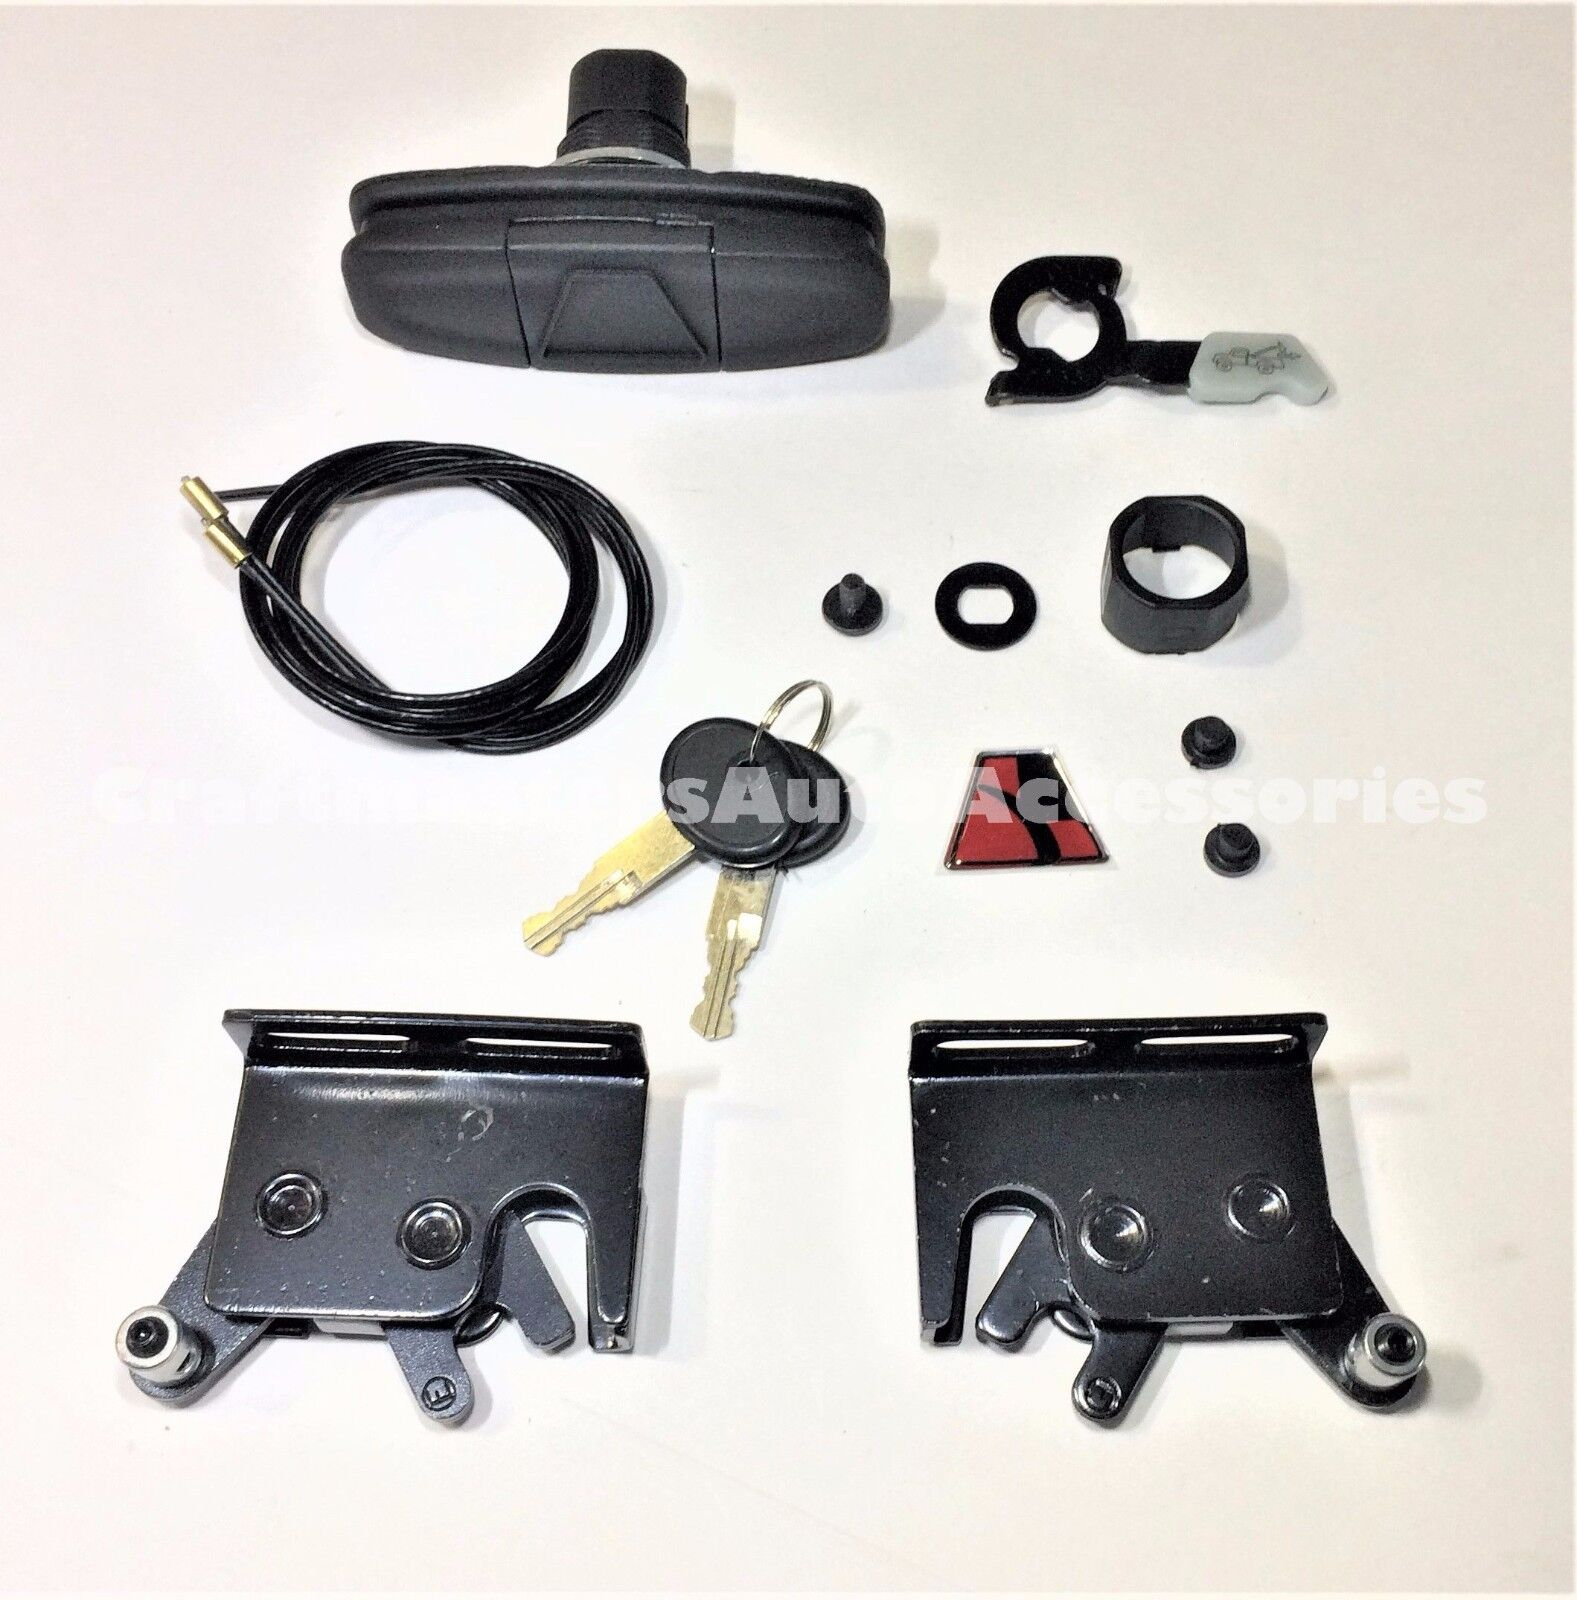 83515 combo LEER Truck cap and Tonneau cover Handle # 113436 and Latches 83514